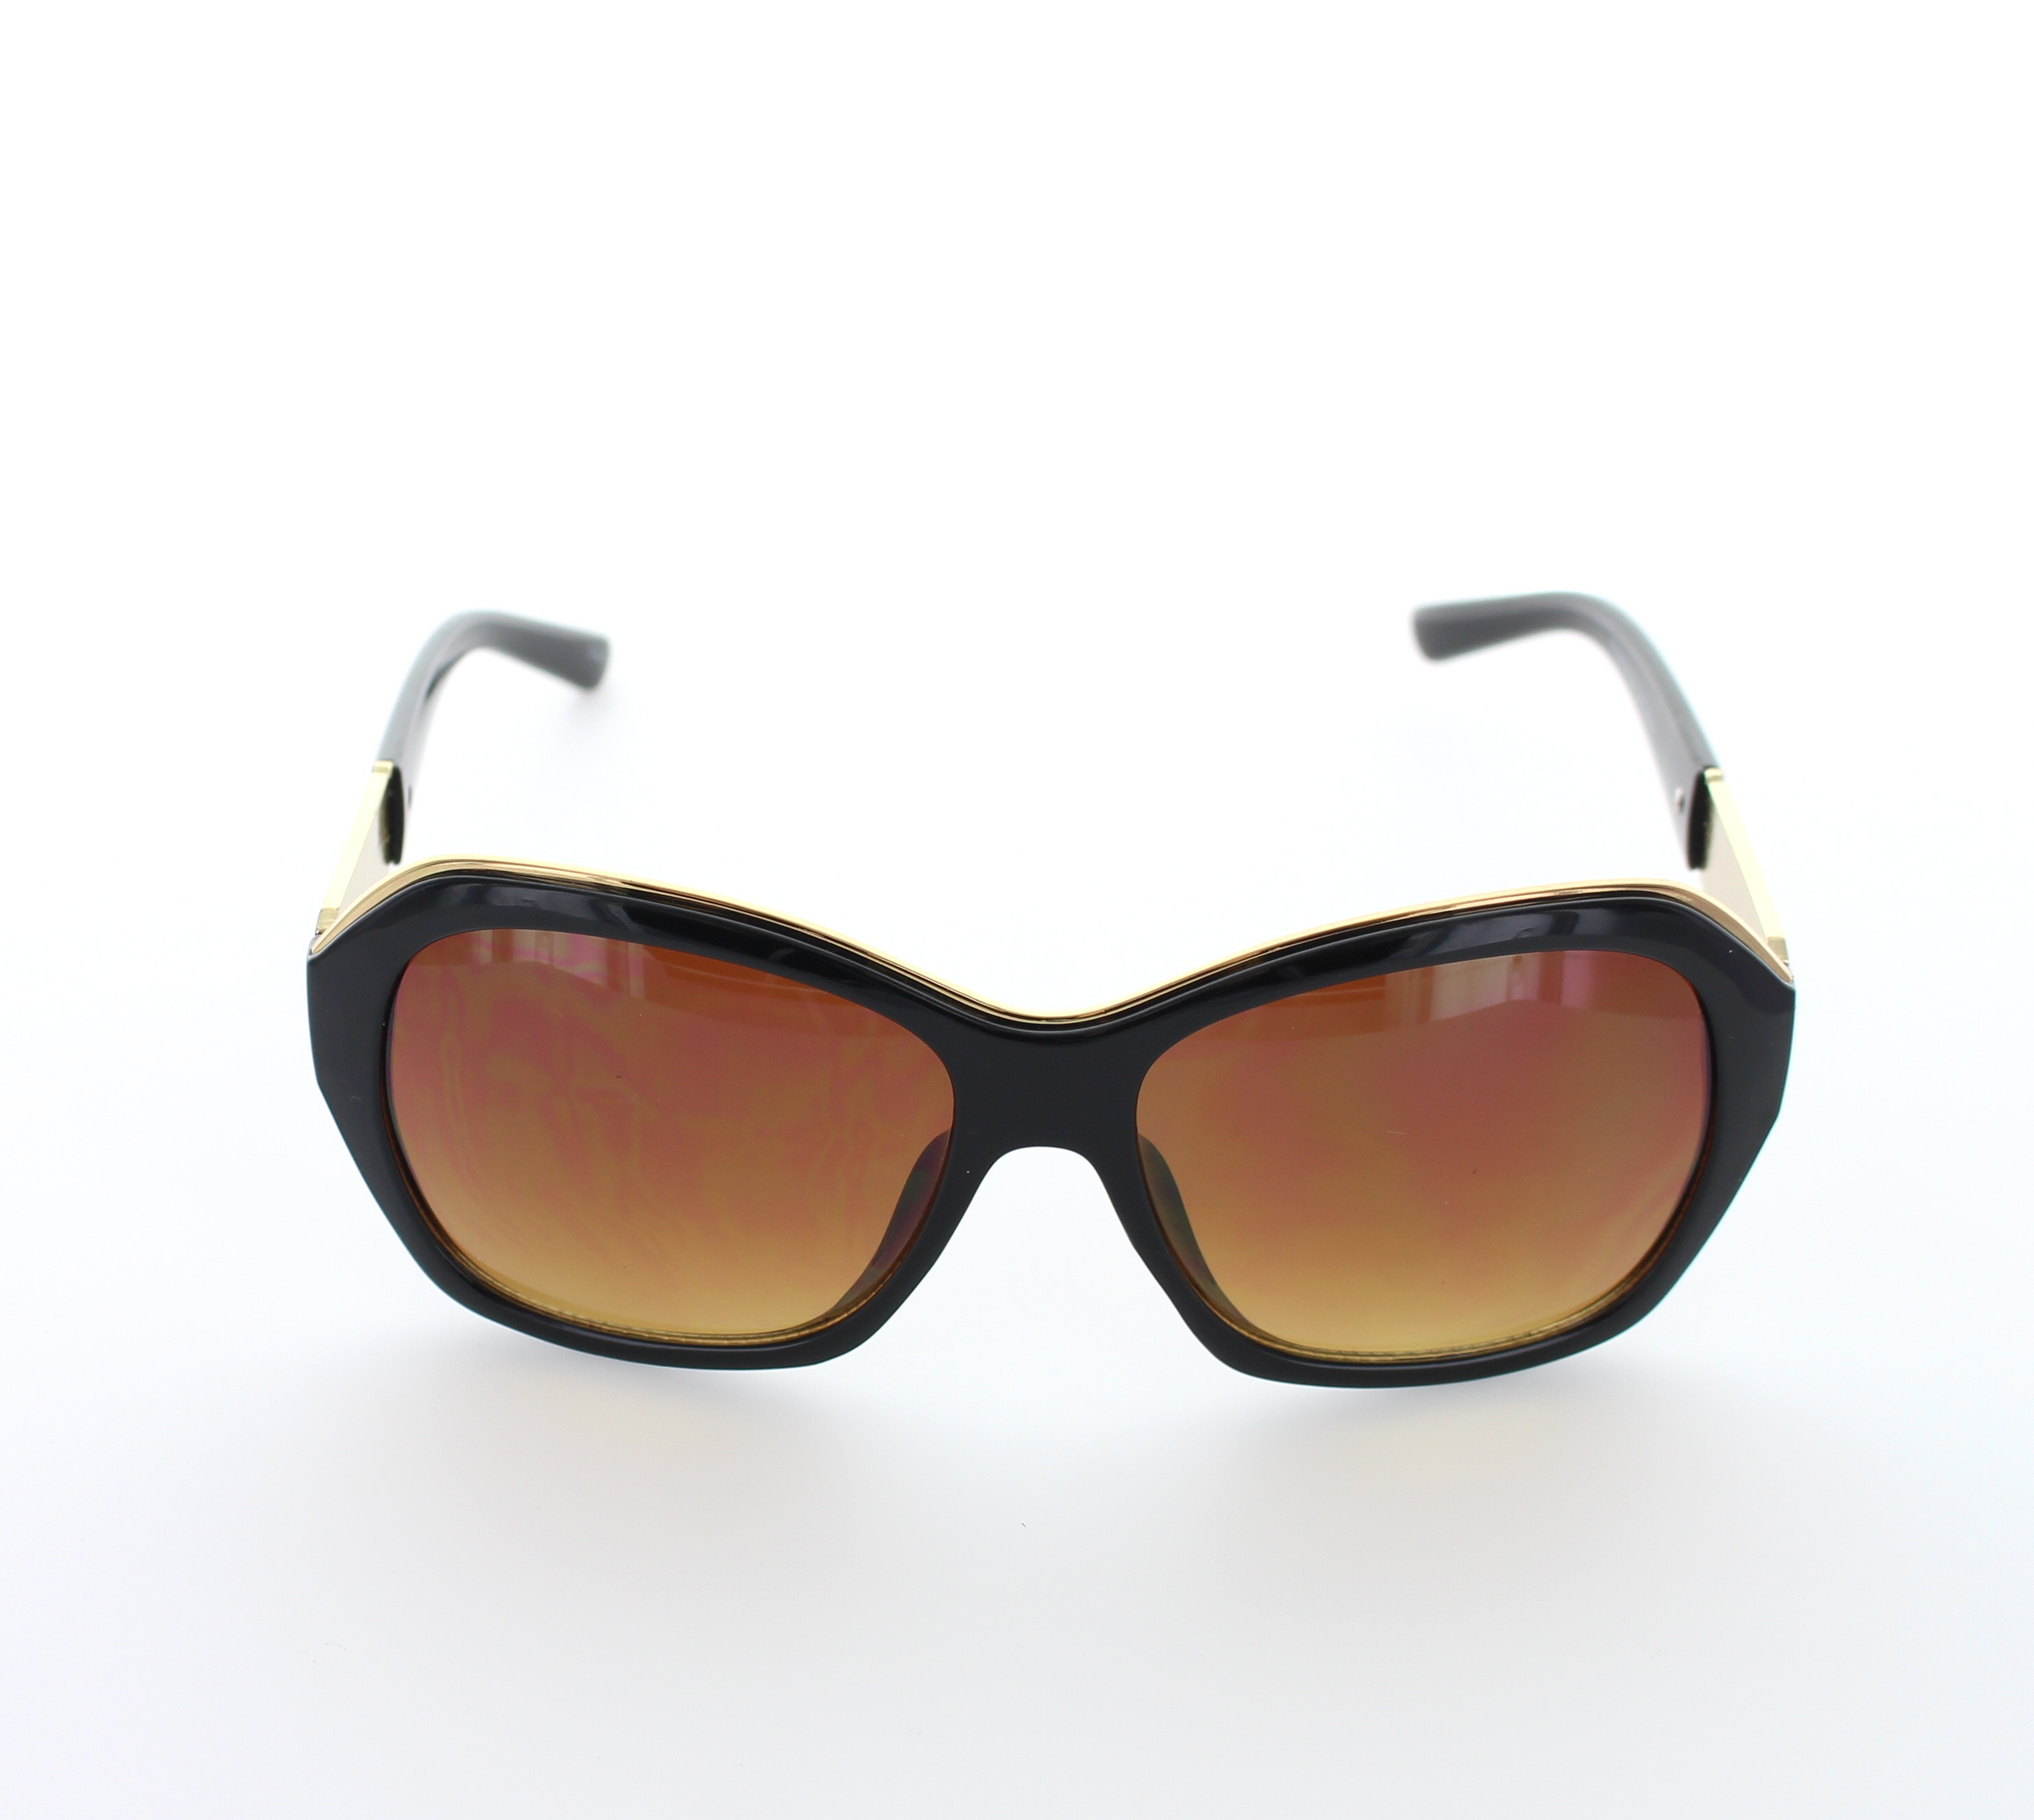 Fashion sunglasses online store 11